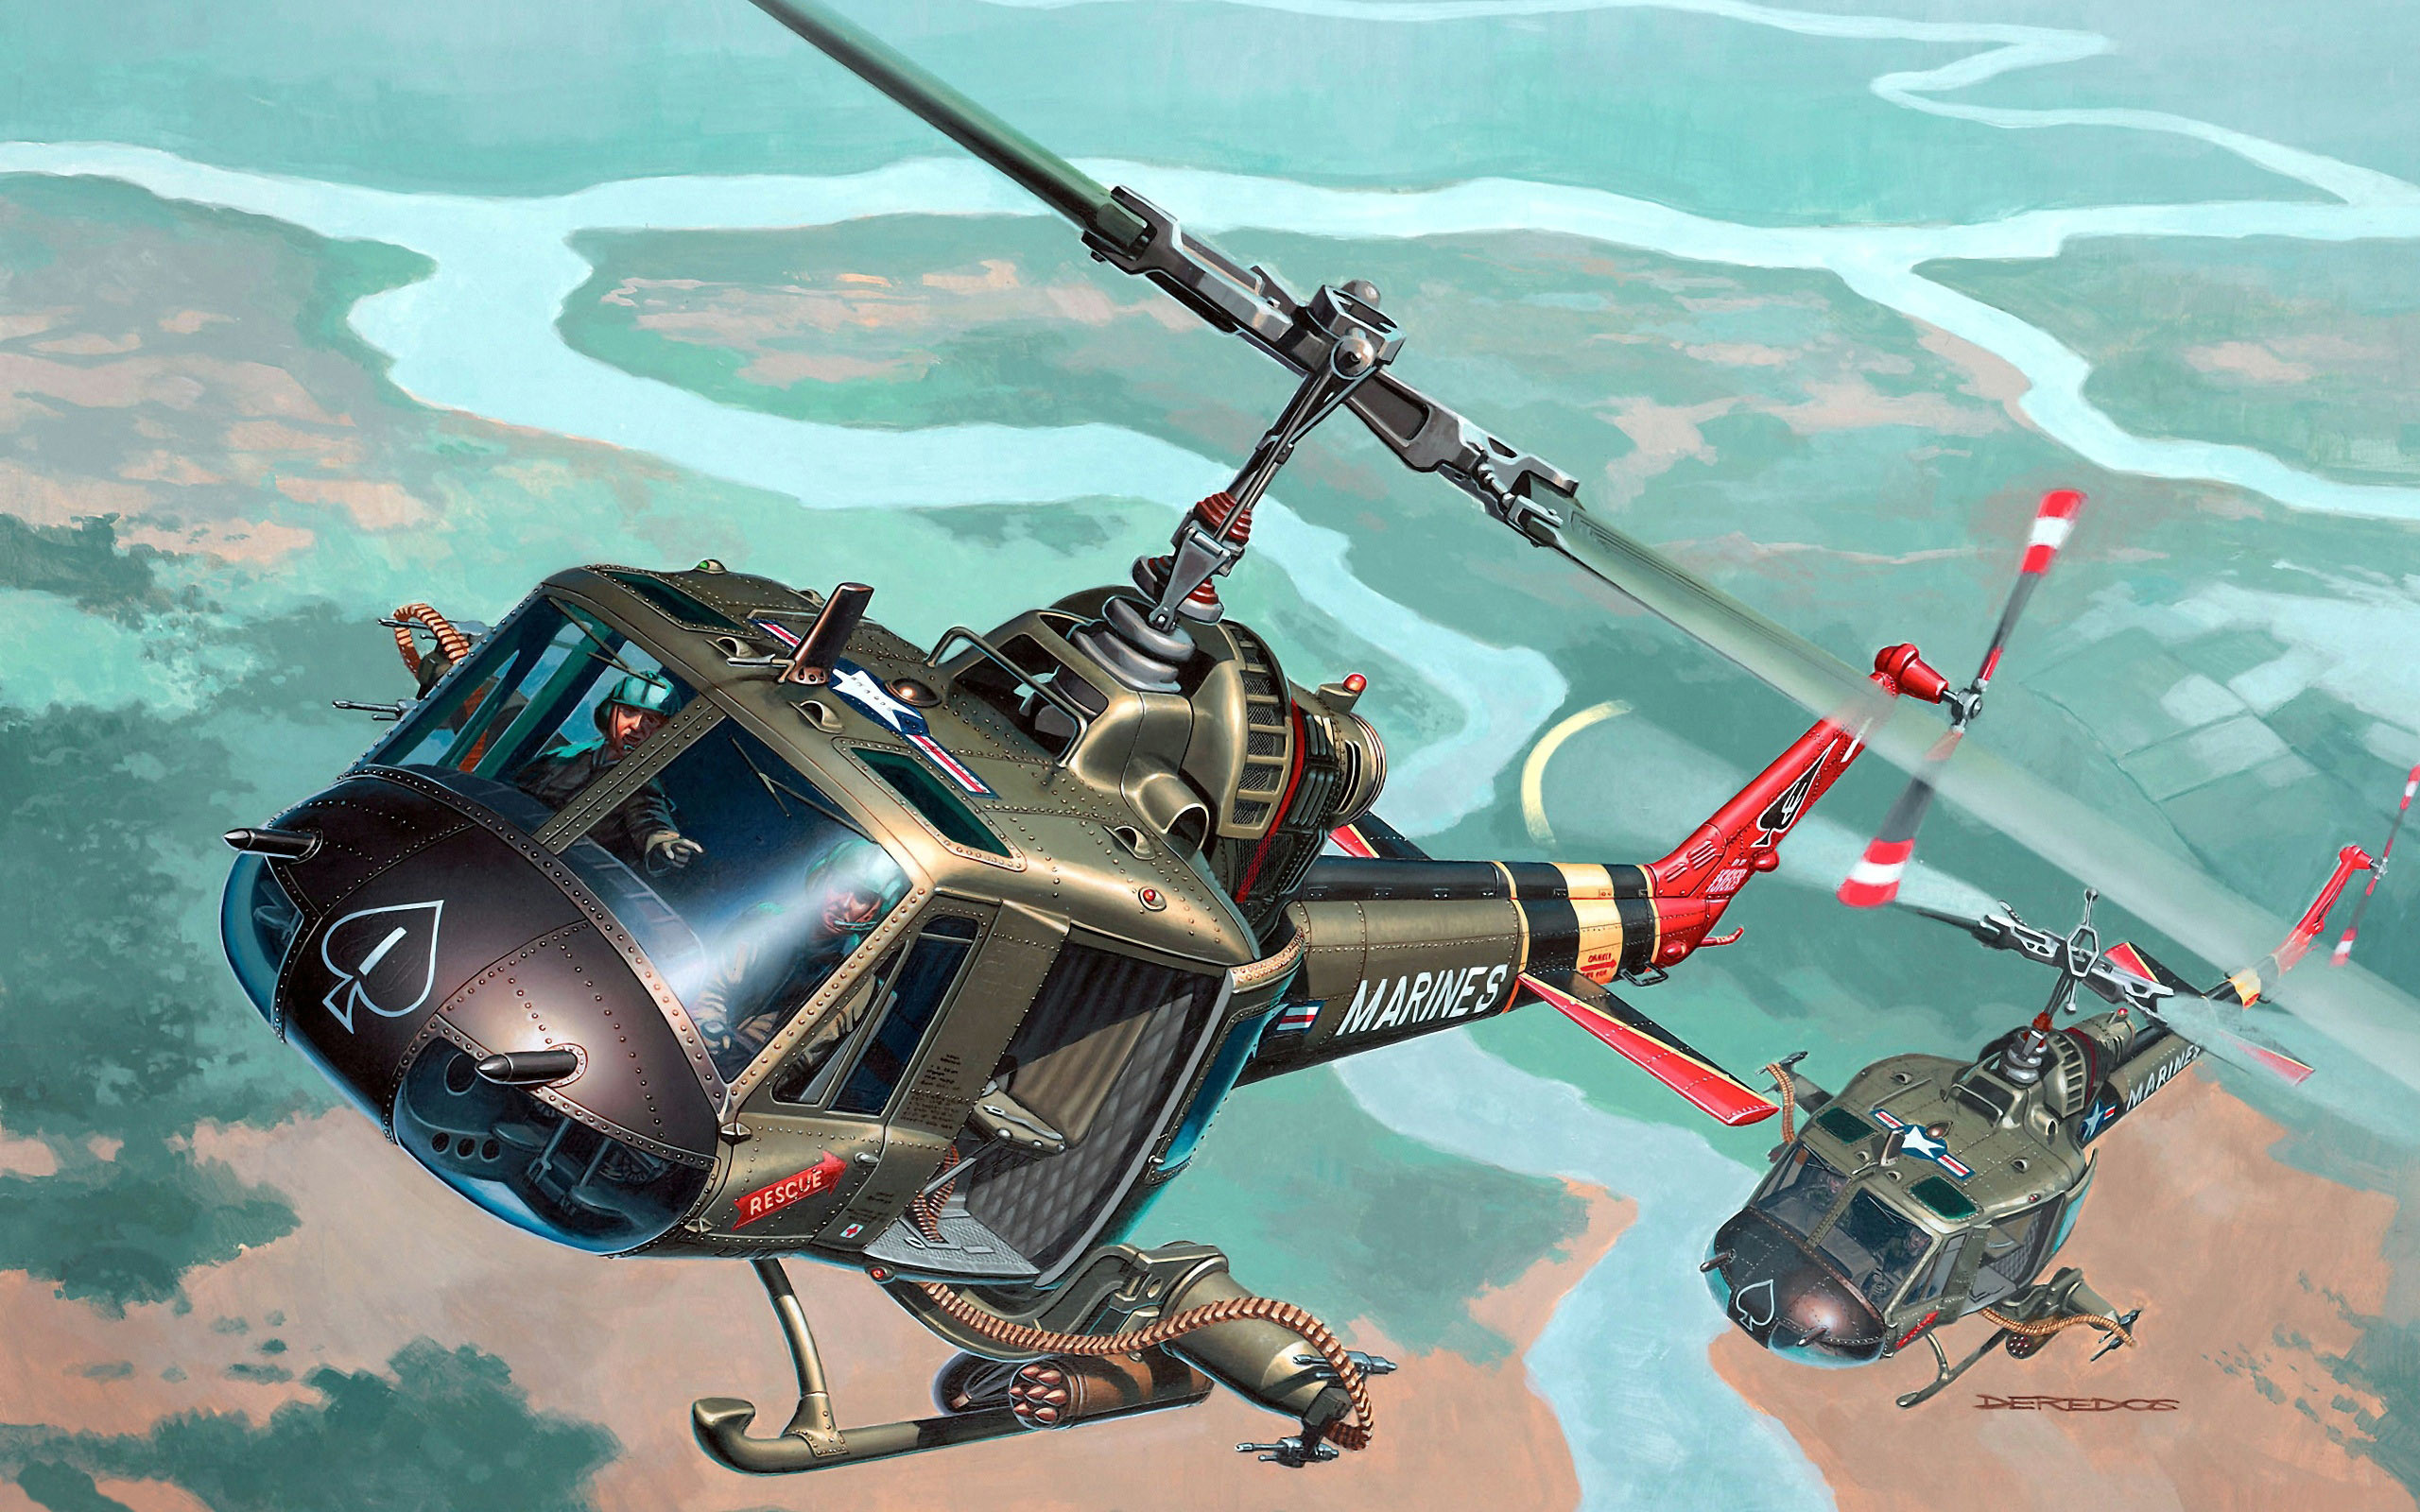 Res: 2560x1600, Helicopter Wallpapers Images